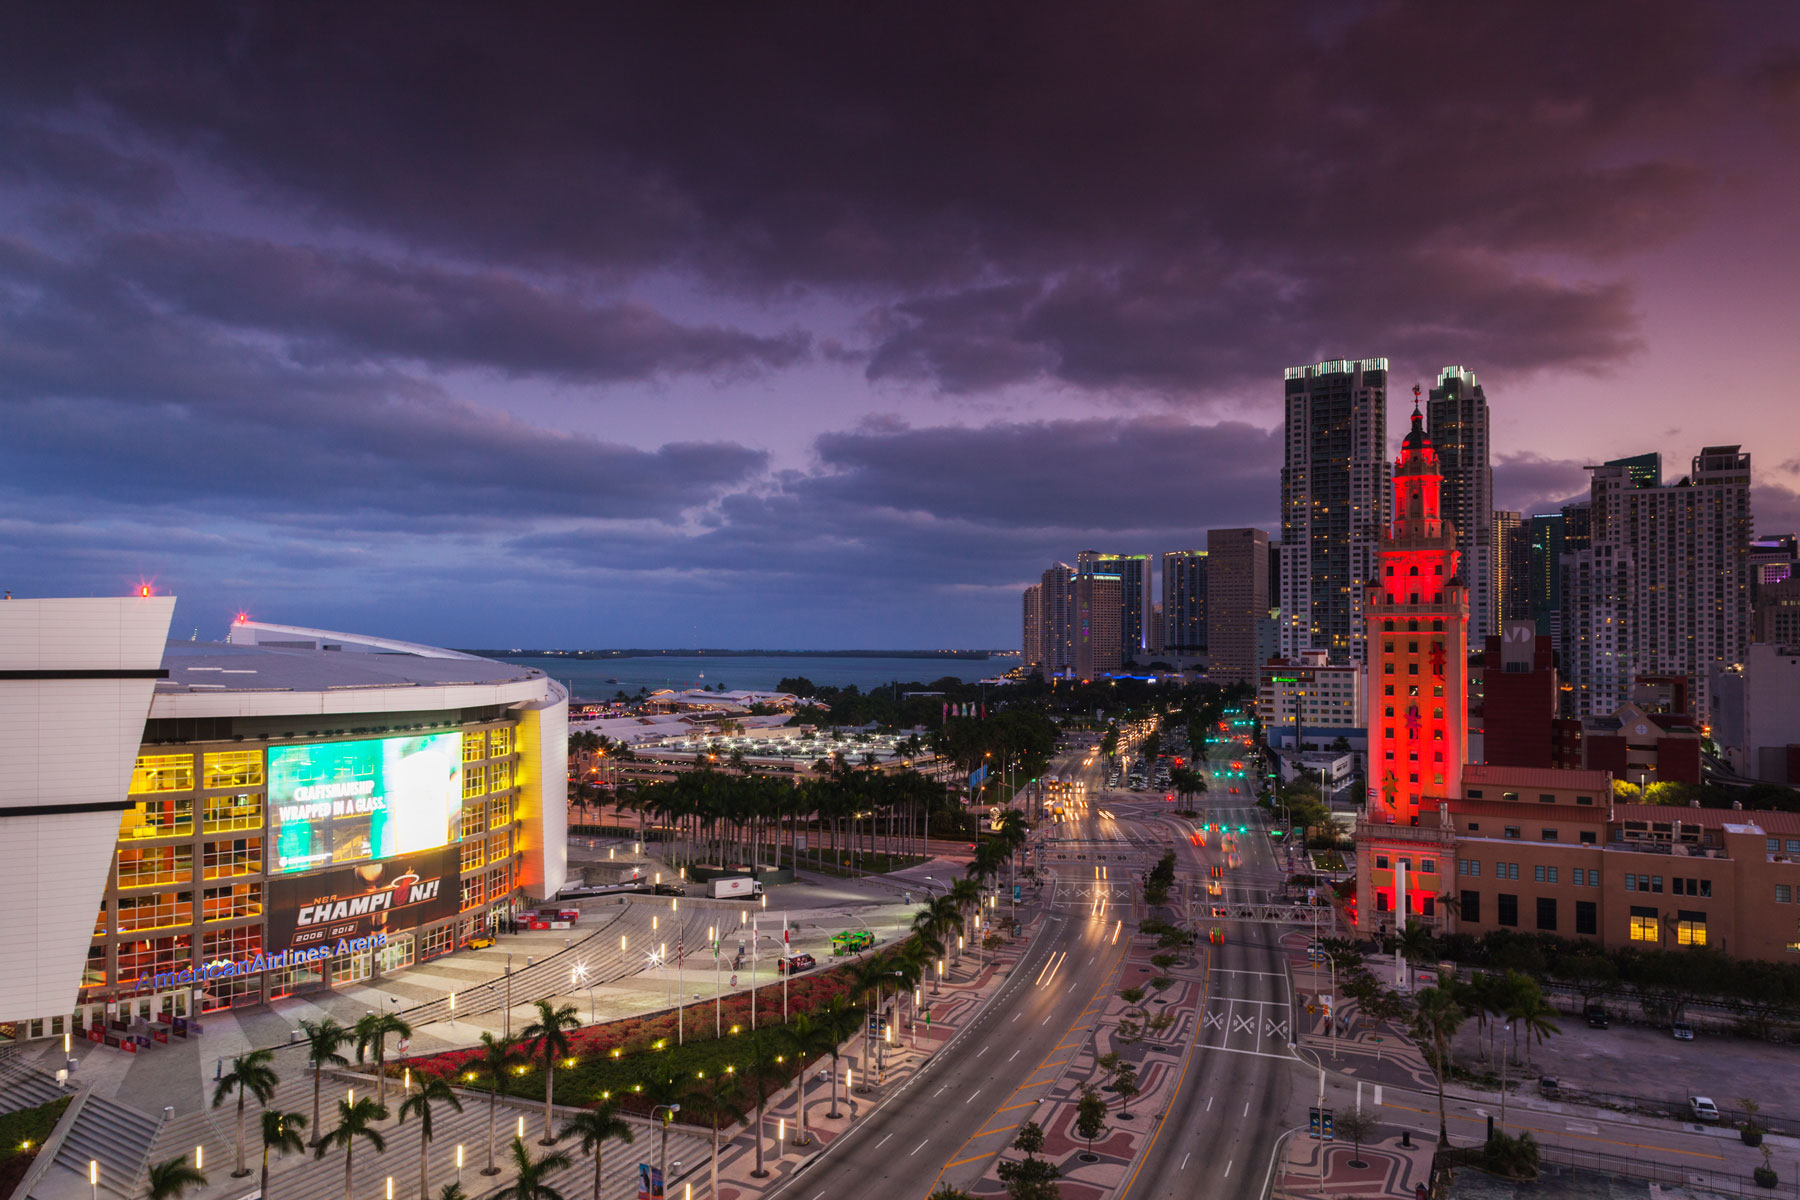 elevated city view of Freedom Tower and American Airlines Arena in Miami, Florida